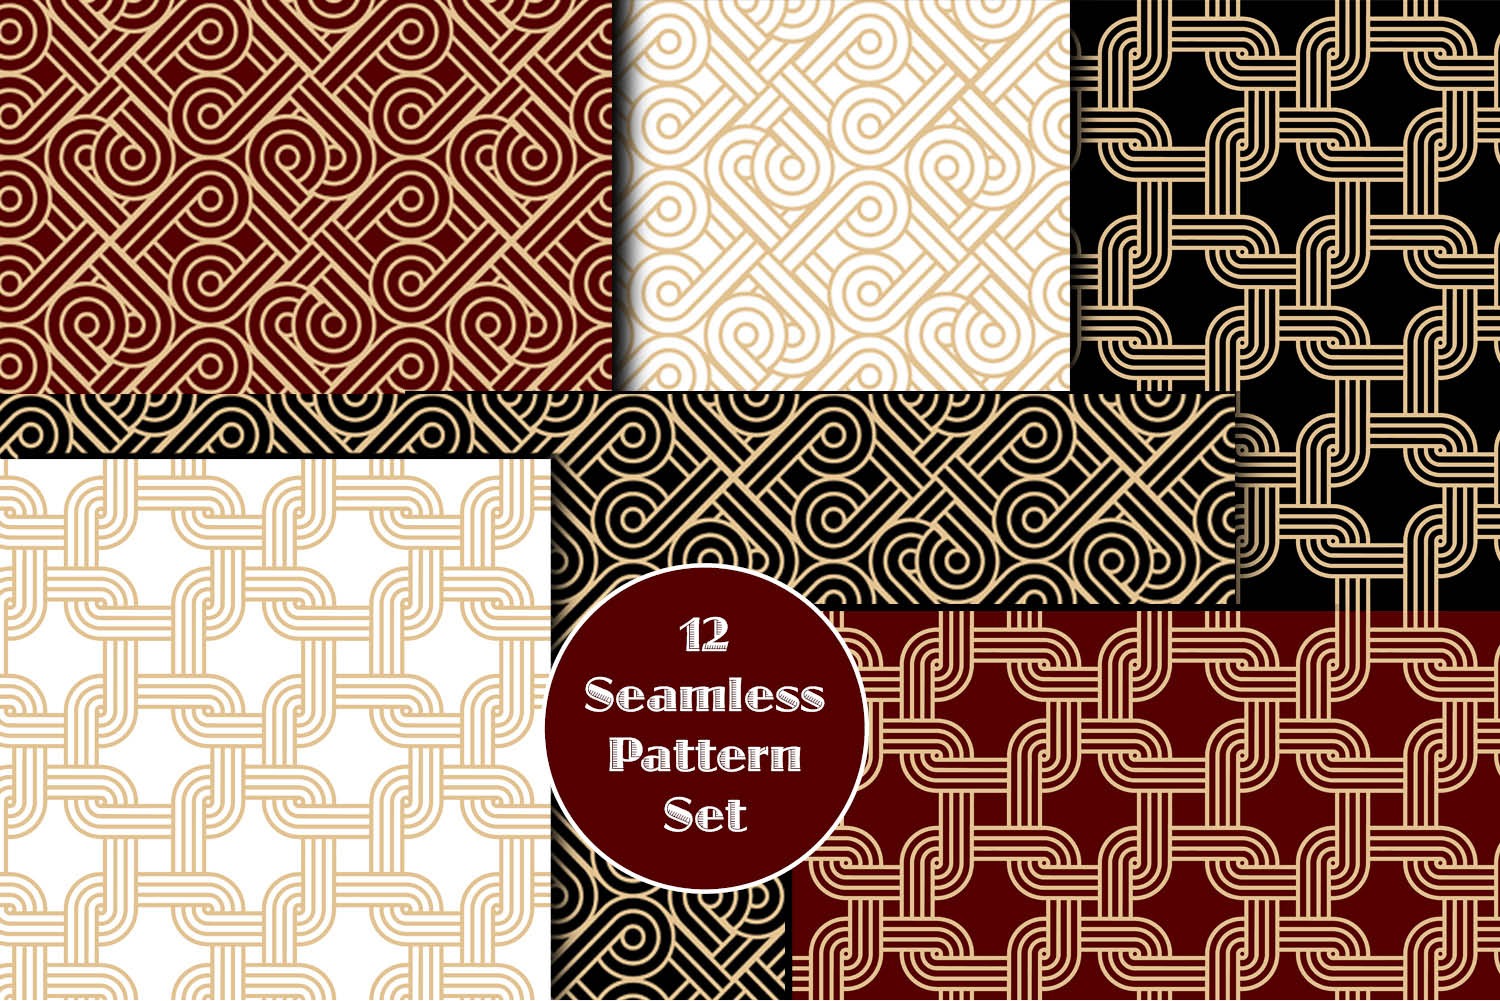 12 Seamless Pattern Set example image 1